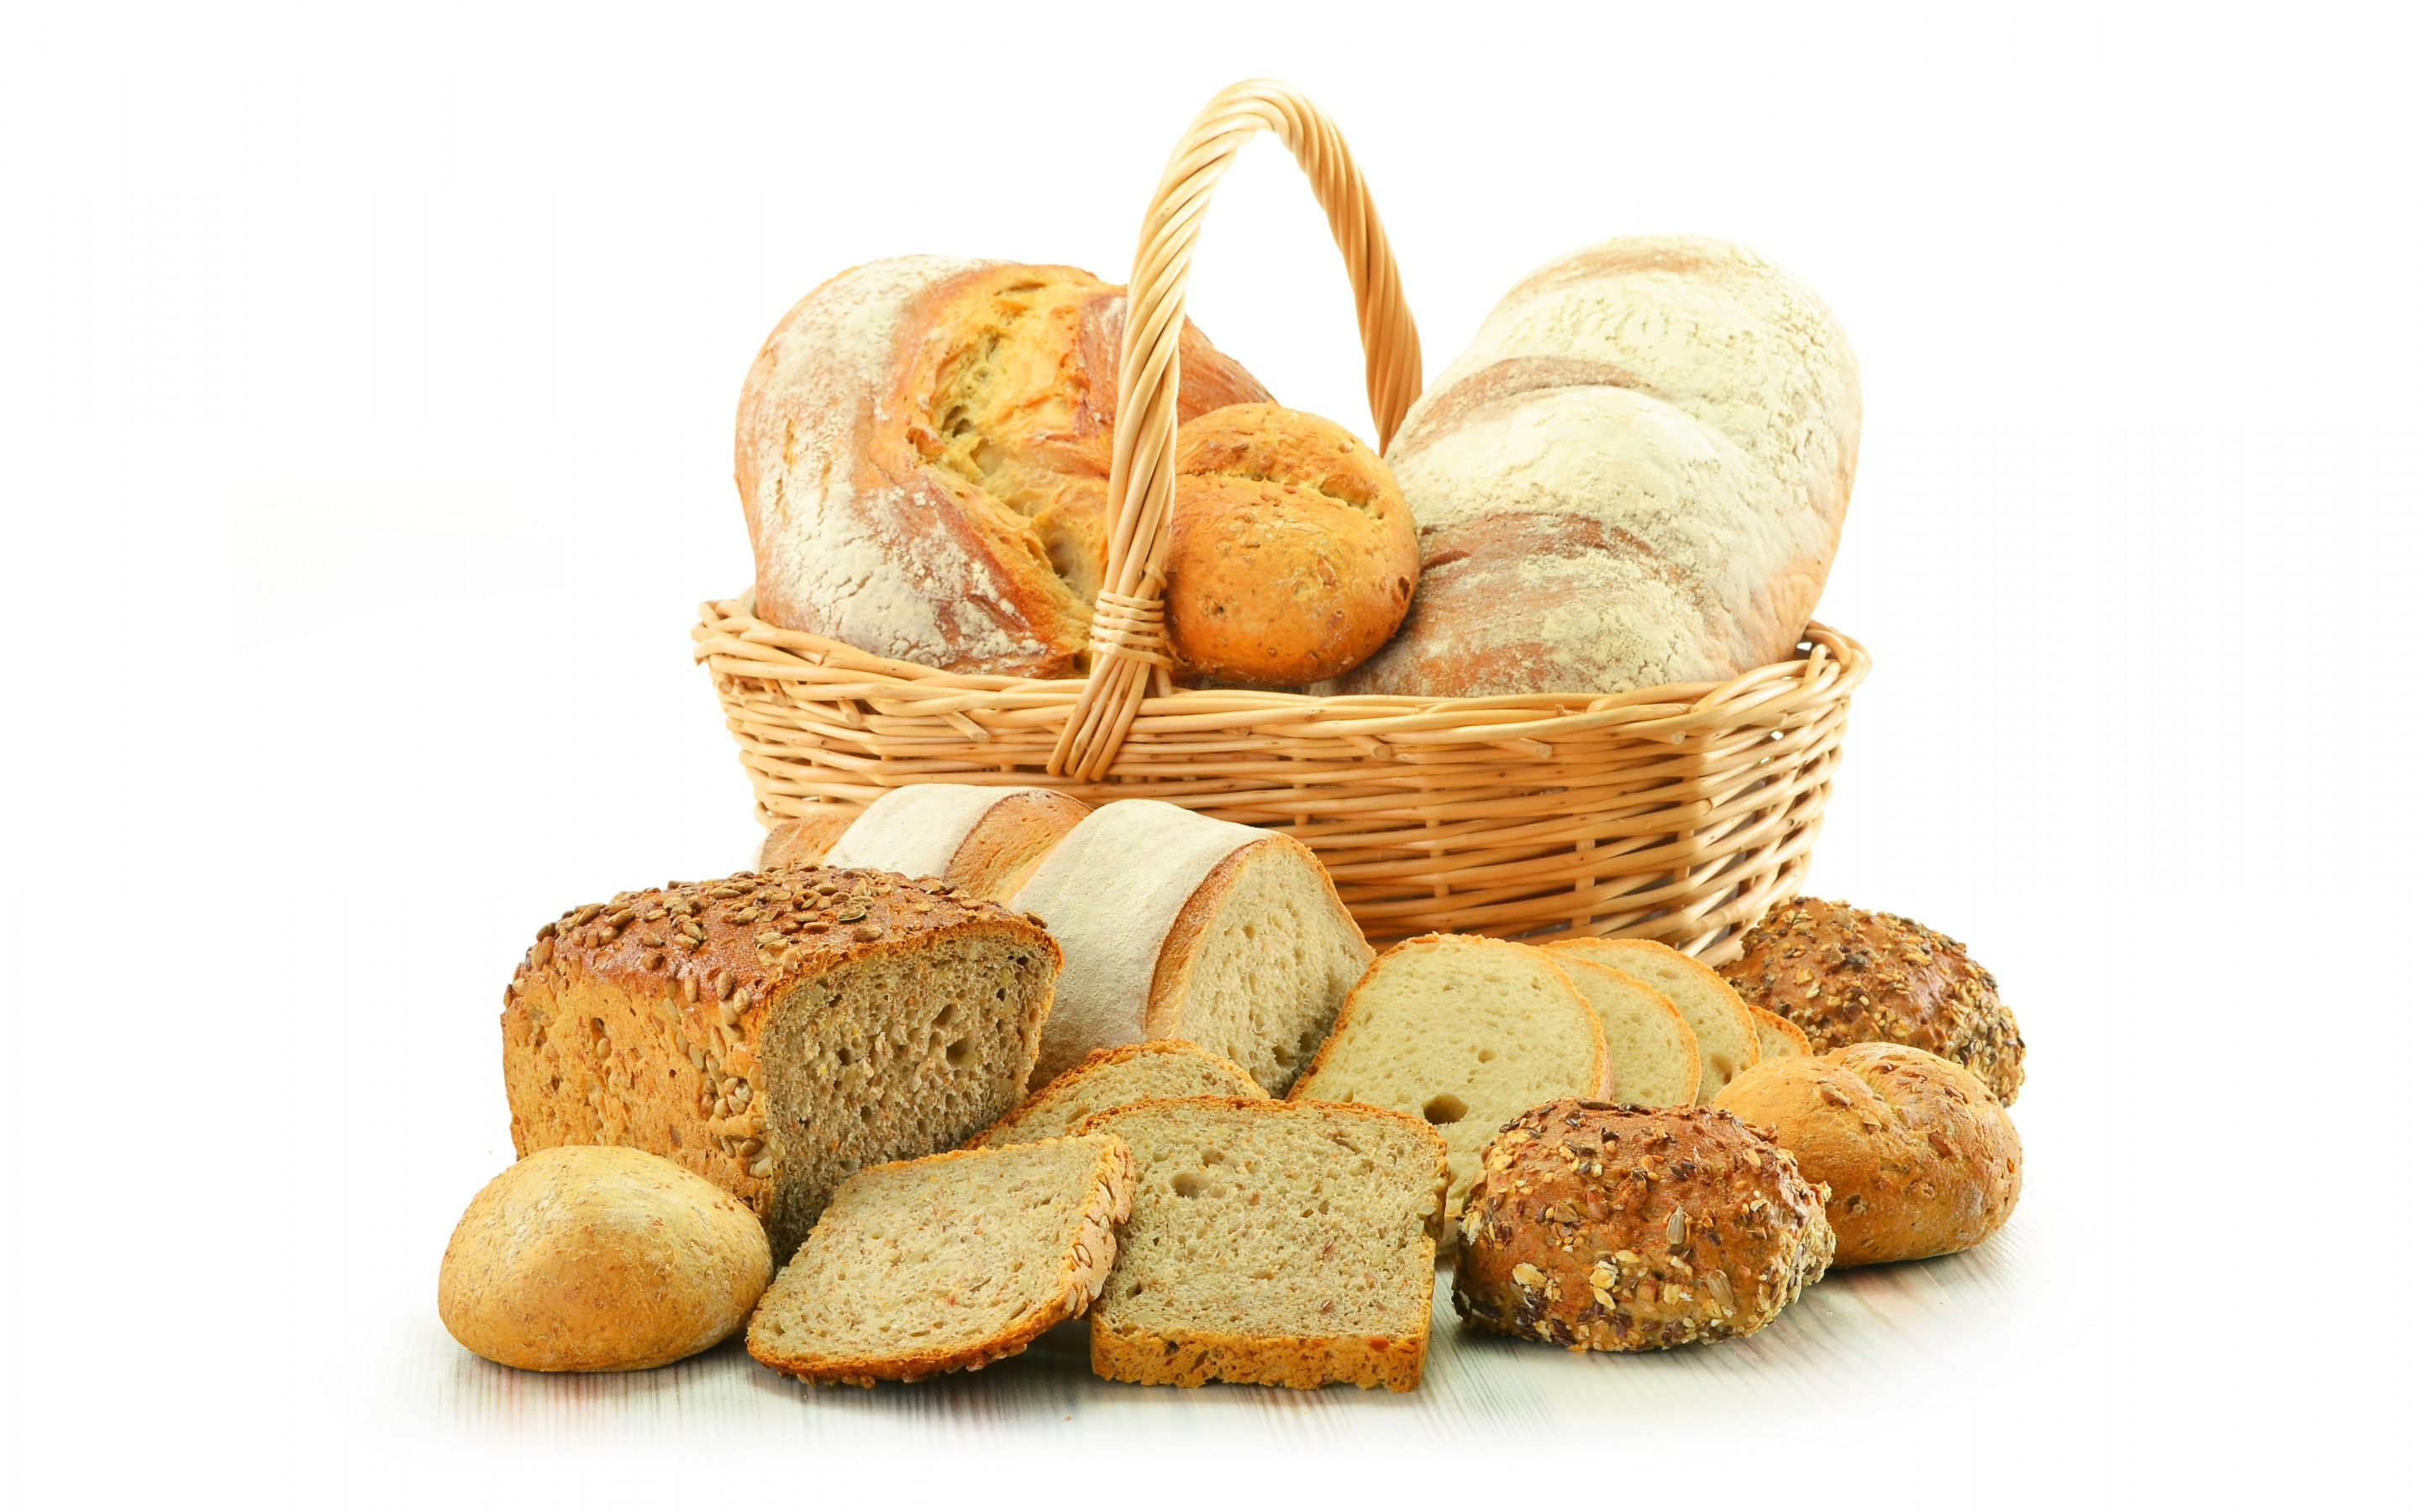 bread full hd wallpaper and background image | 2880x1800 | id:370588